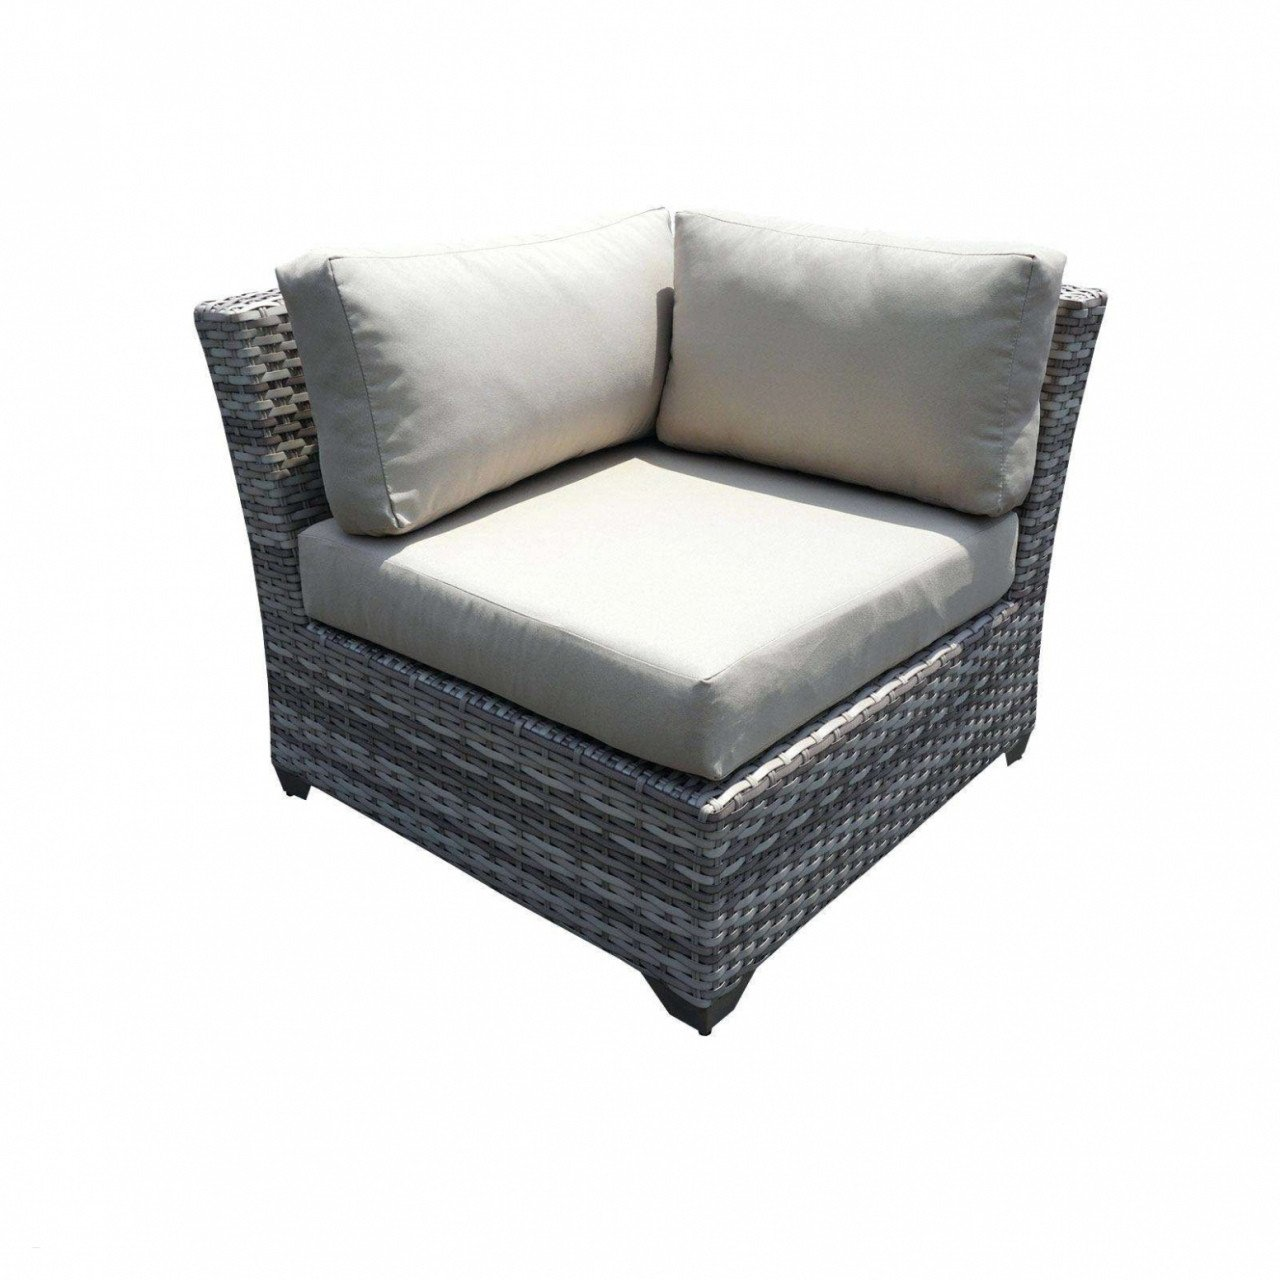 Nice Chairs for Bedroom Fresh Patio Daybed — Procura Home Blog